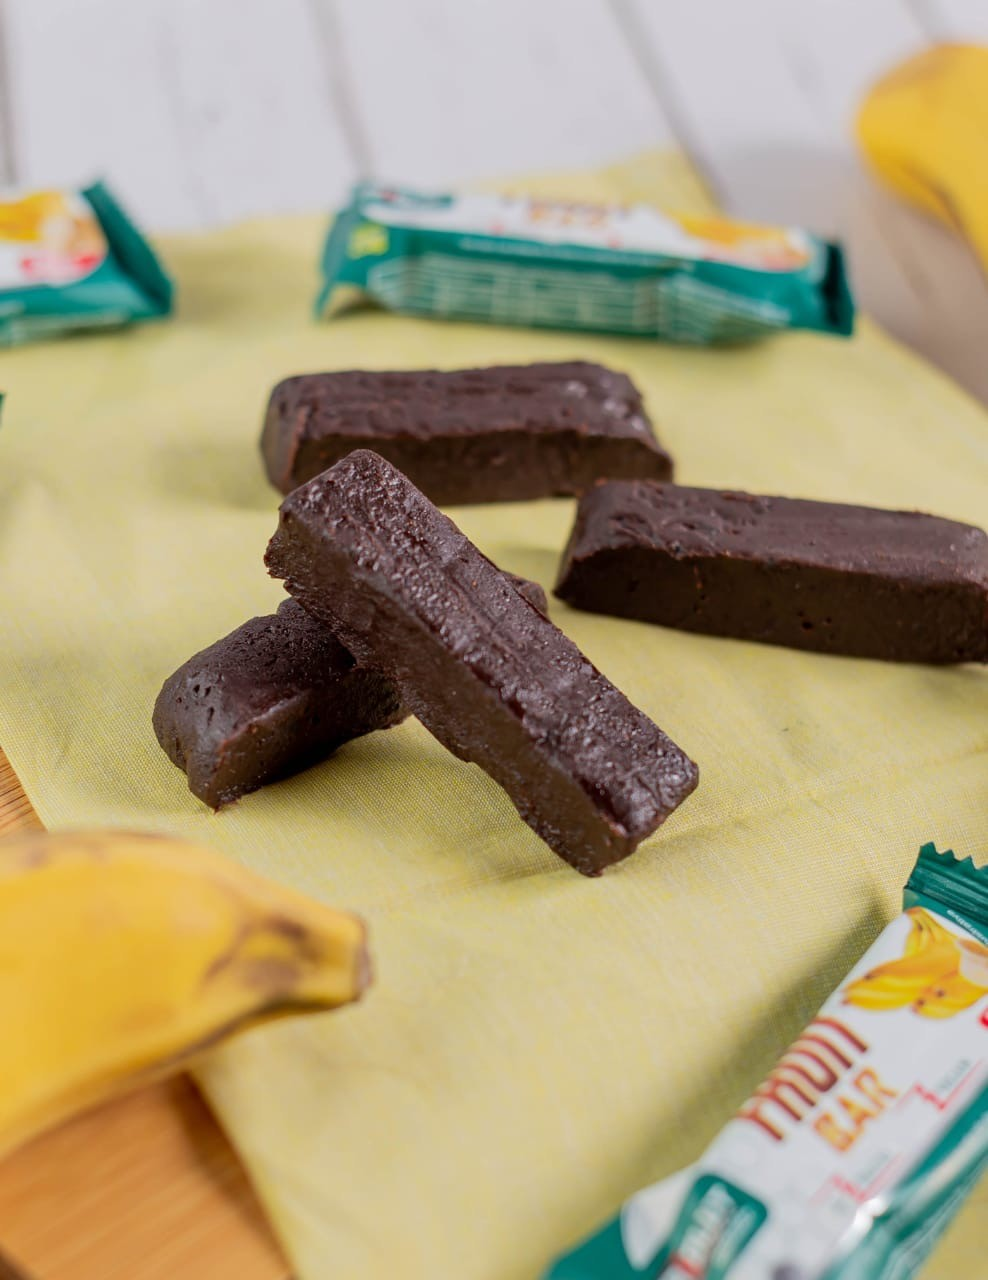 BARRA DE FRUTA FRUIT BAR BANANA + ÔMEGA 3 - ABS NUTRITION